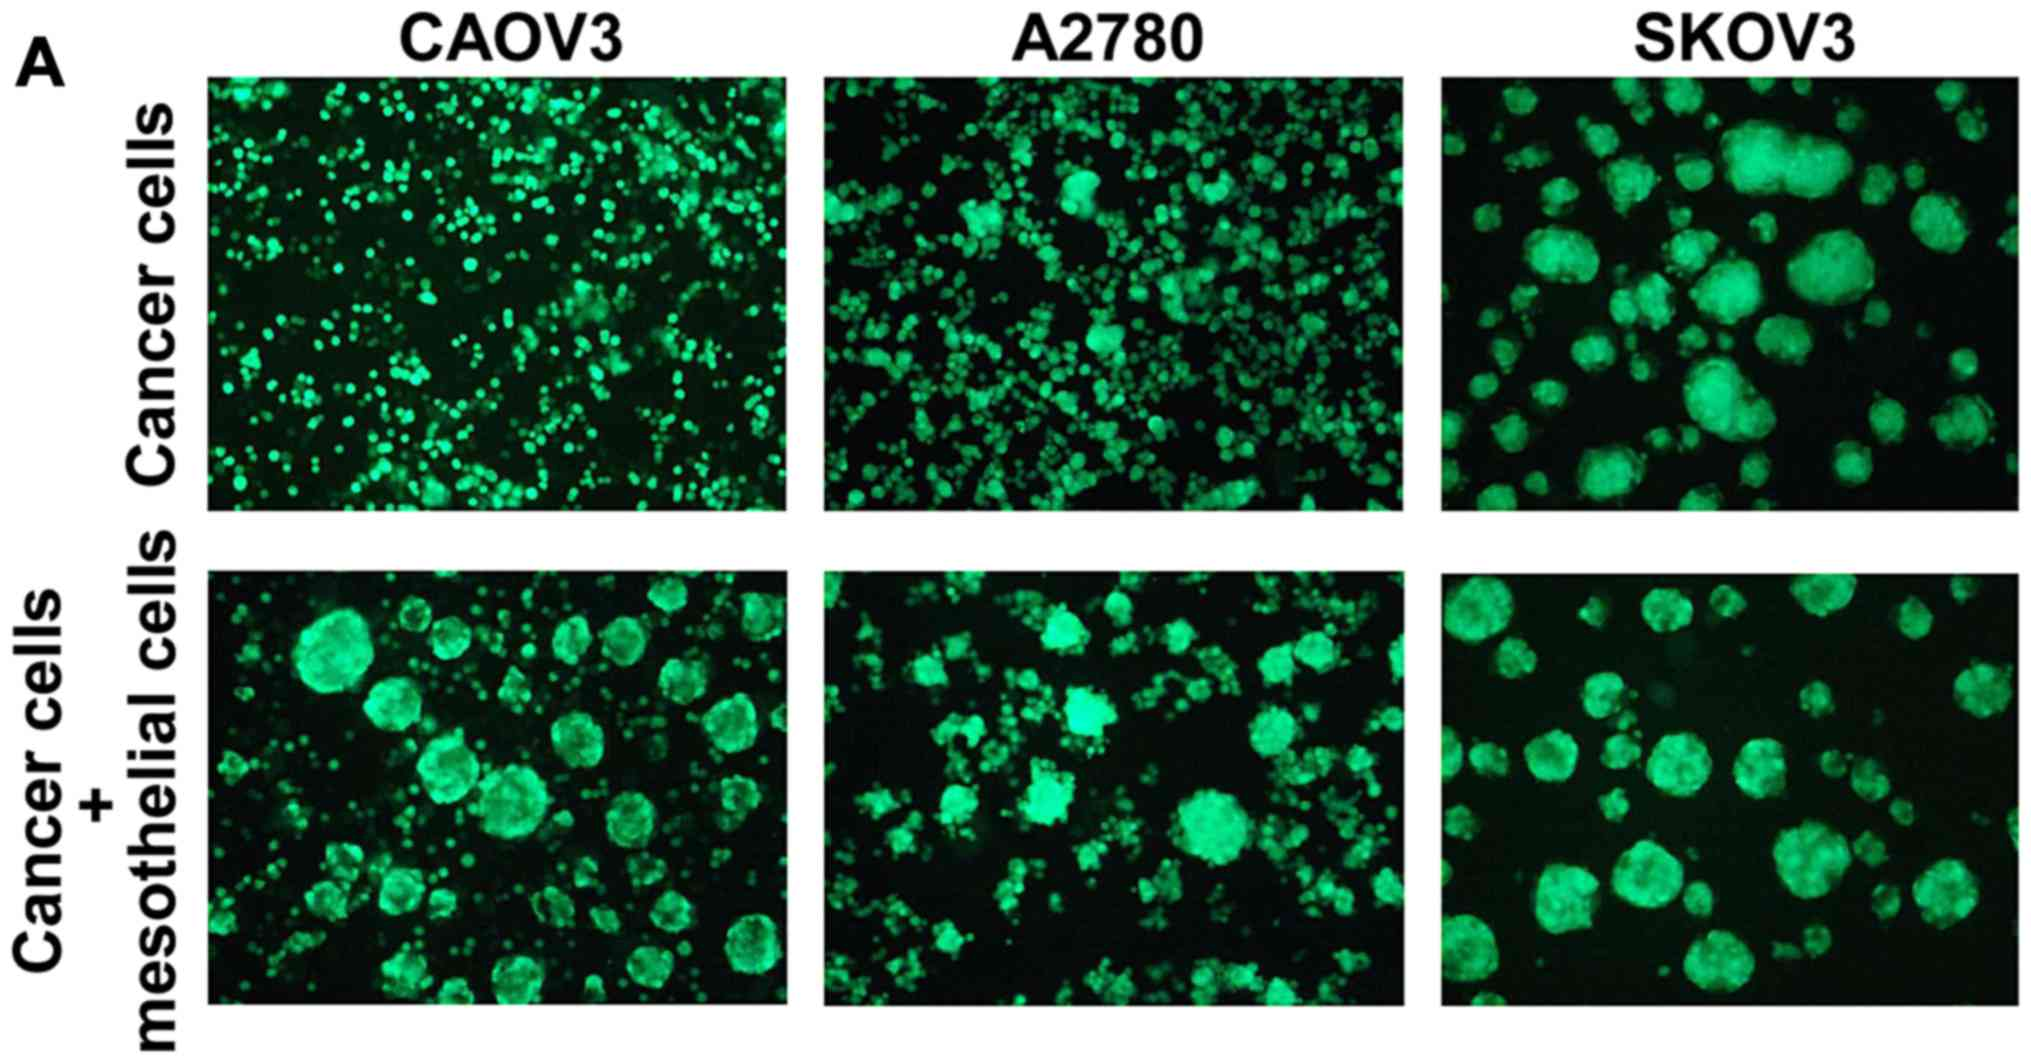 Mesothelial Cells Facilitate Cancer Stem Like Properties In Spheroids Of Ovarian Cancer Cells